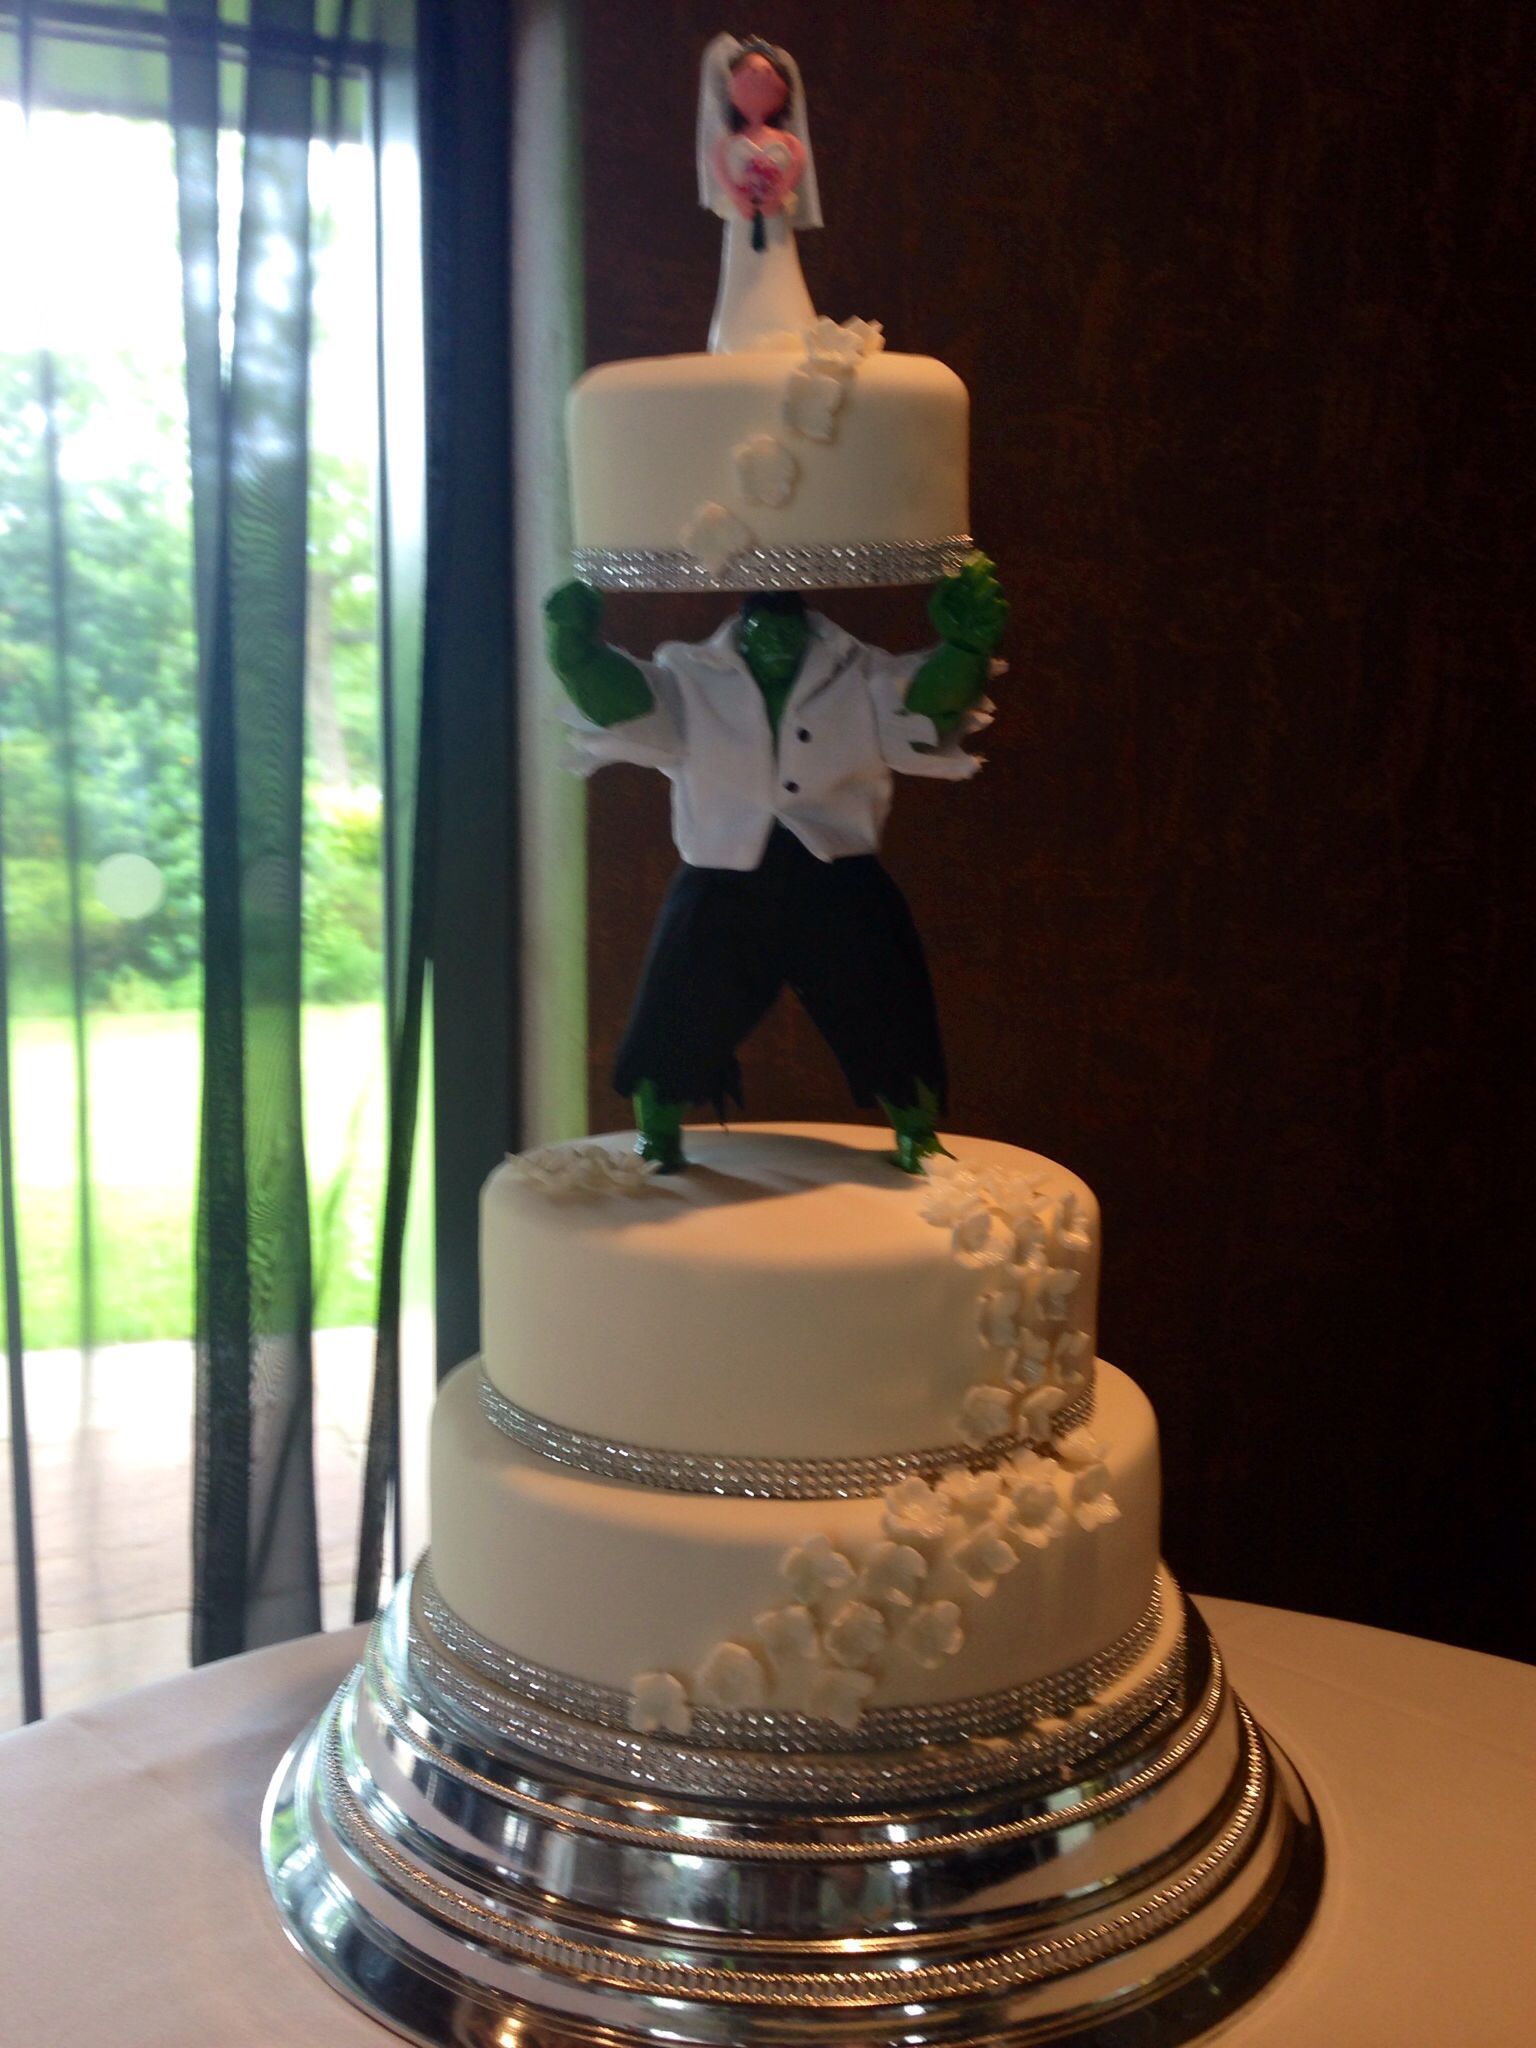 Hulk wedding cake I know its not a party cake but wow this